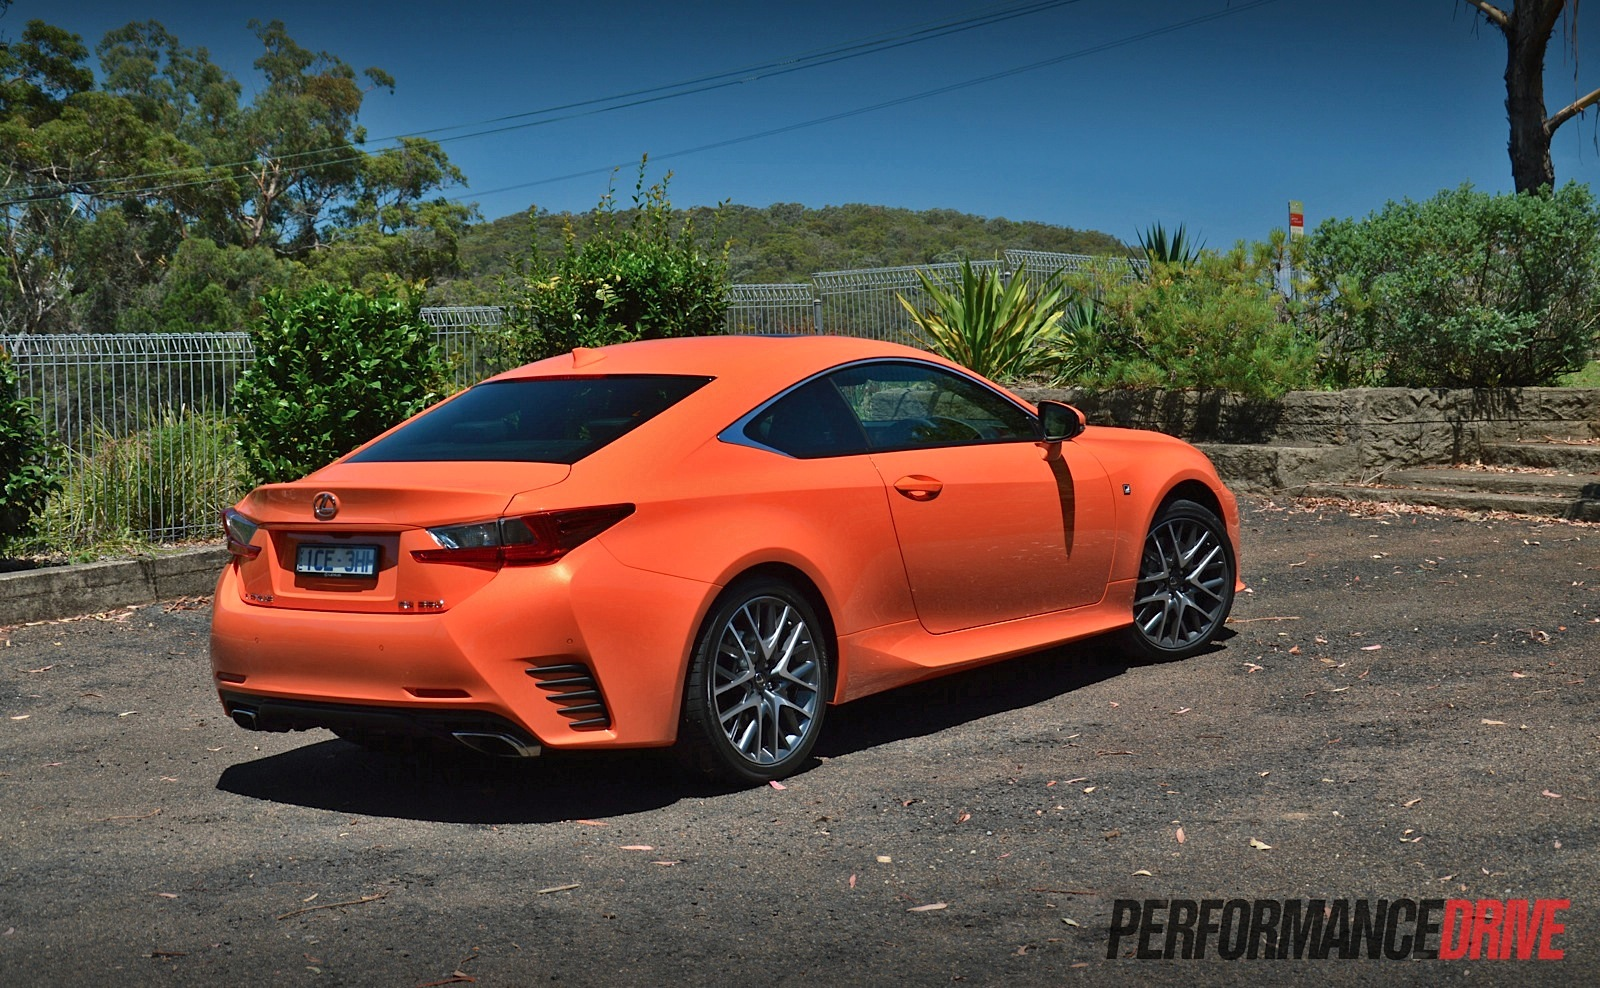 Brilliant 2015 Lexus RC 350 F Sport Review Video  PerformanceDrive